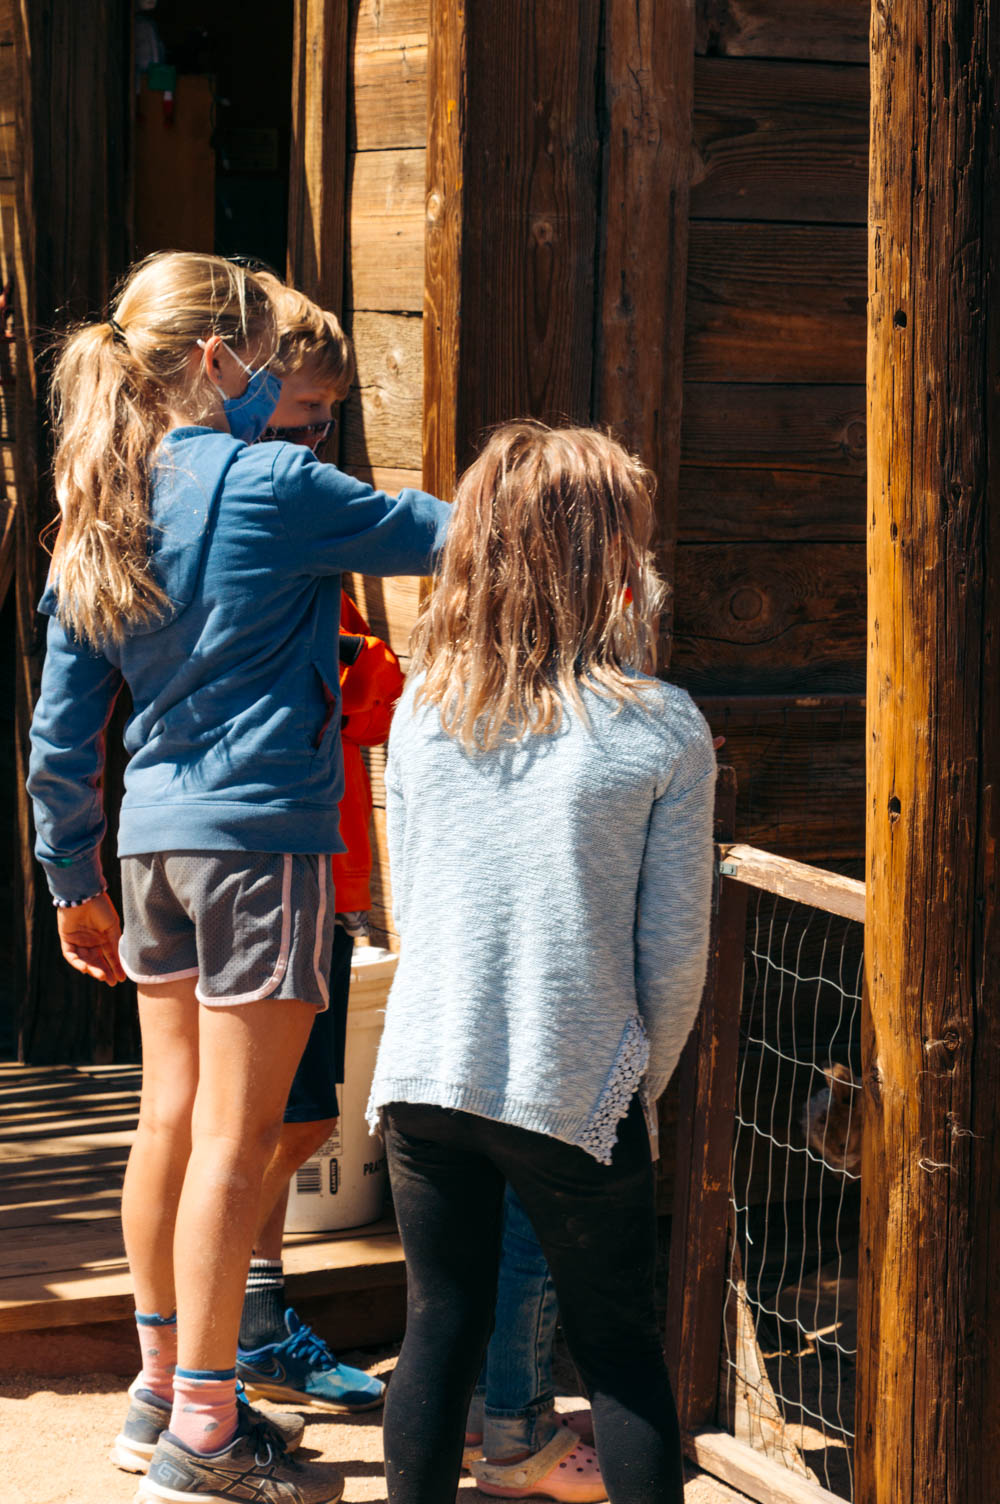 Petting zoo in Pioneertown- Roads and Destinations